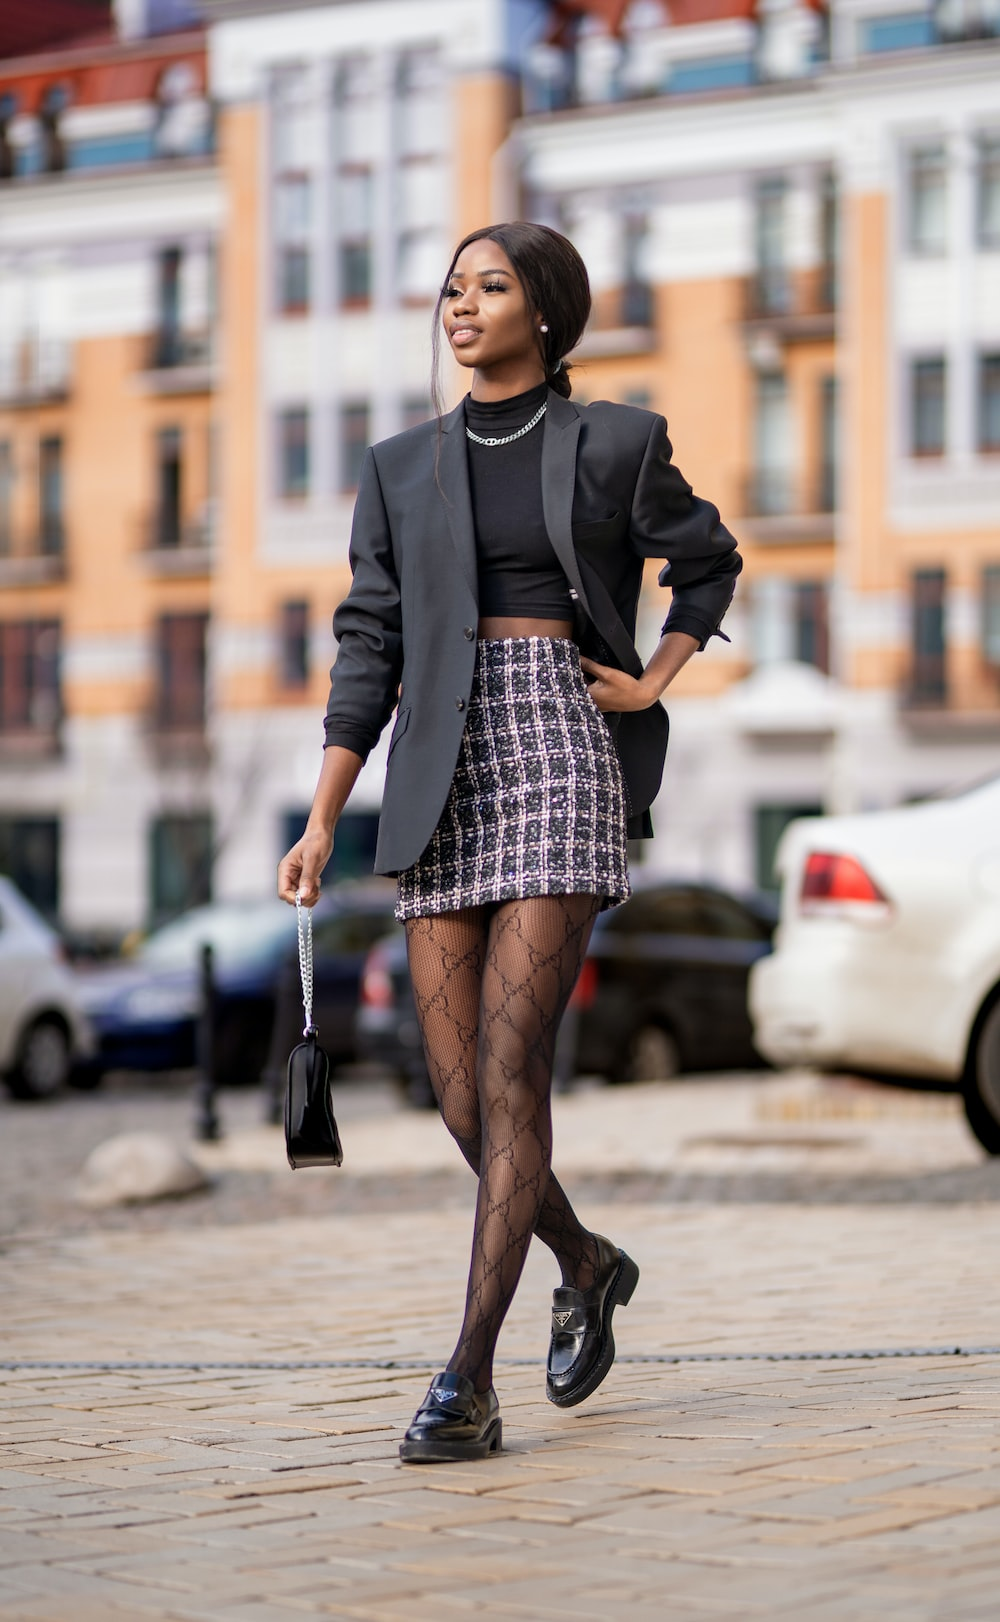 woman in black long sleeve shirt and brown skirt standing on sidewalk during daytime